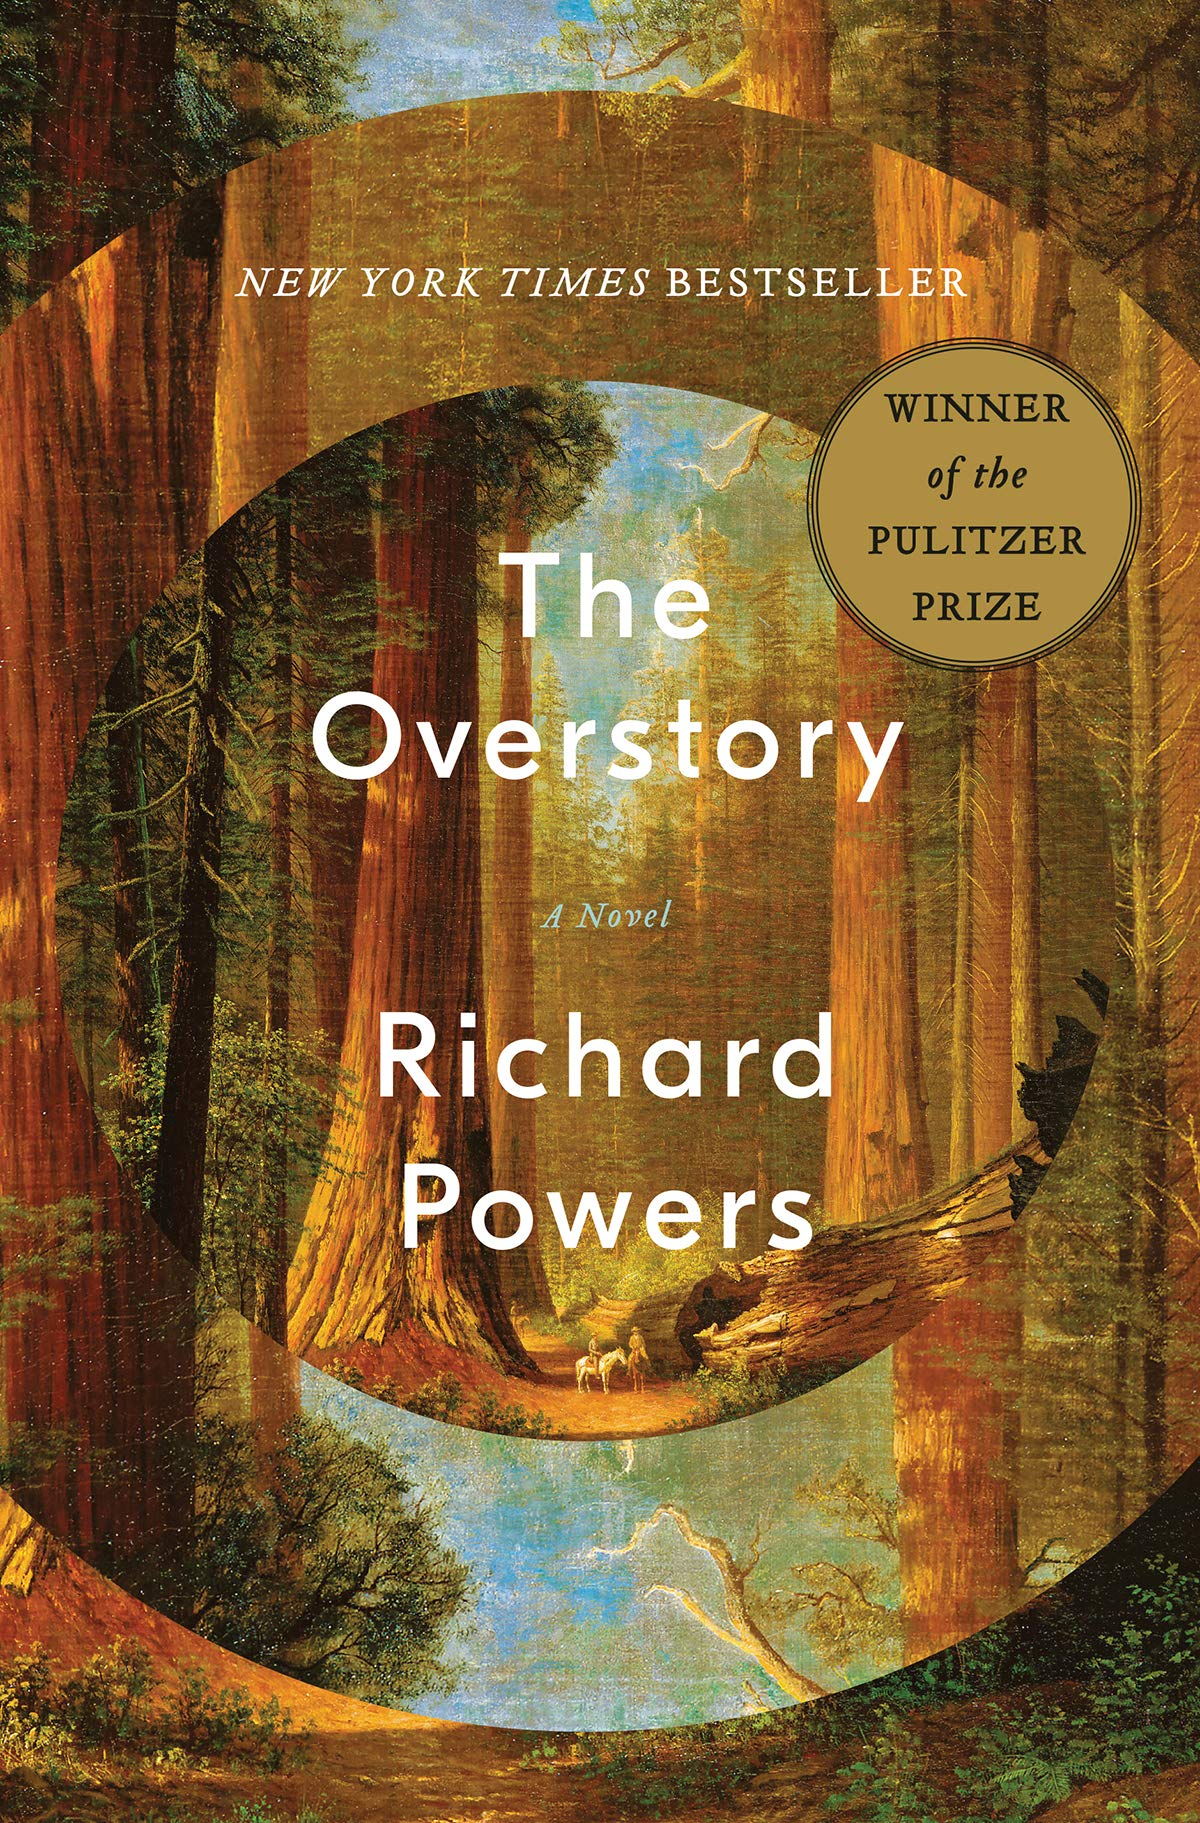 Richard Power's book, The Overstory, an escape into the natural world.